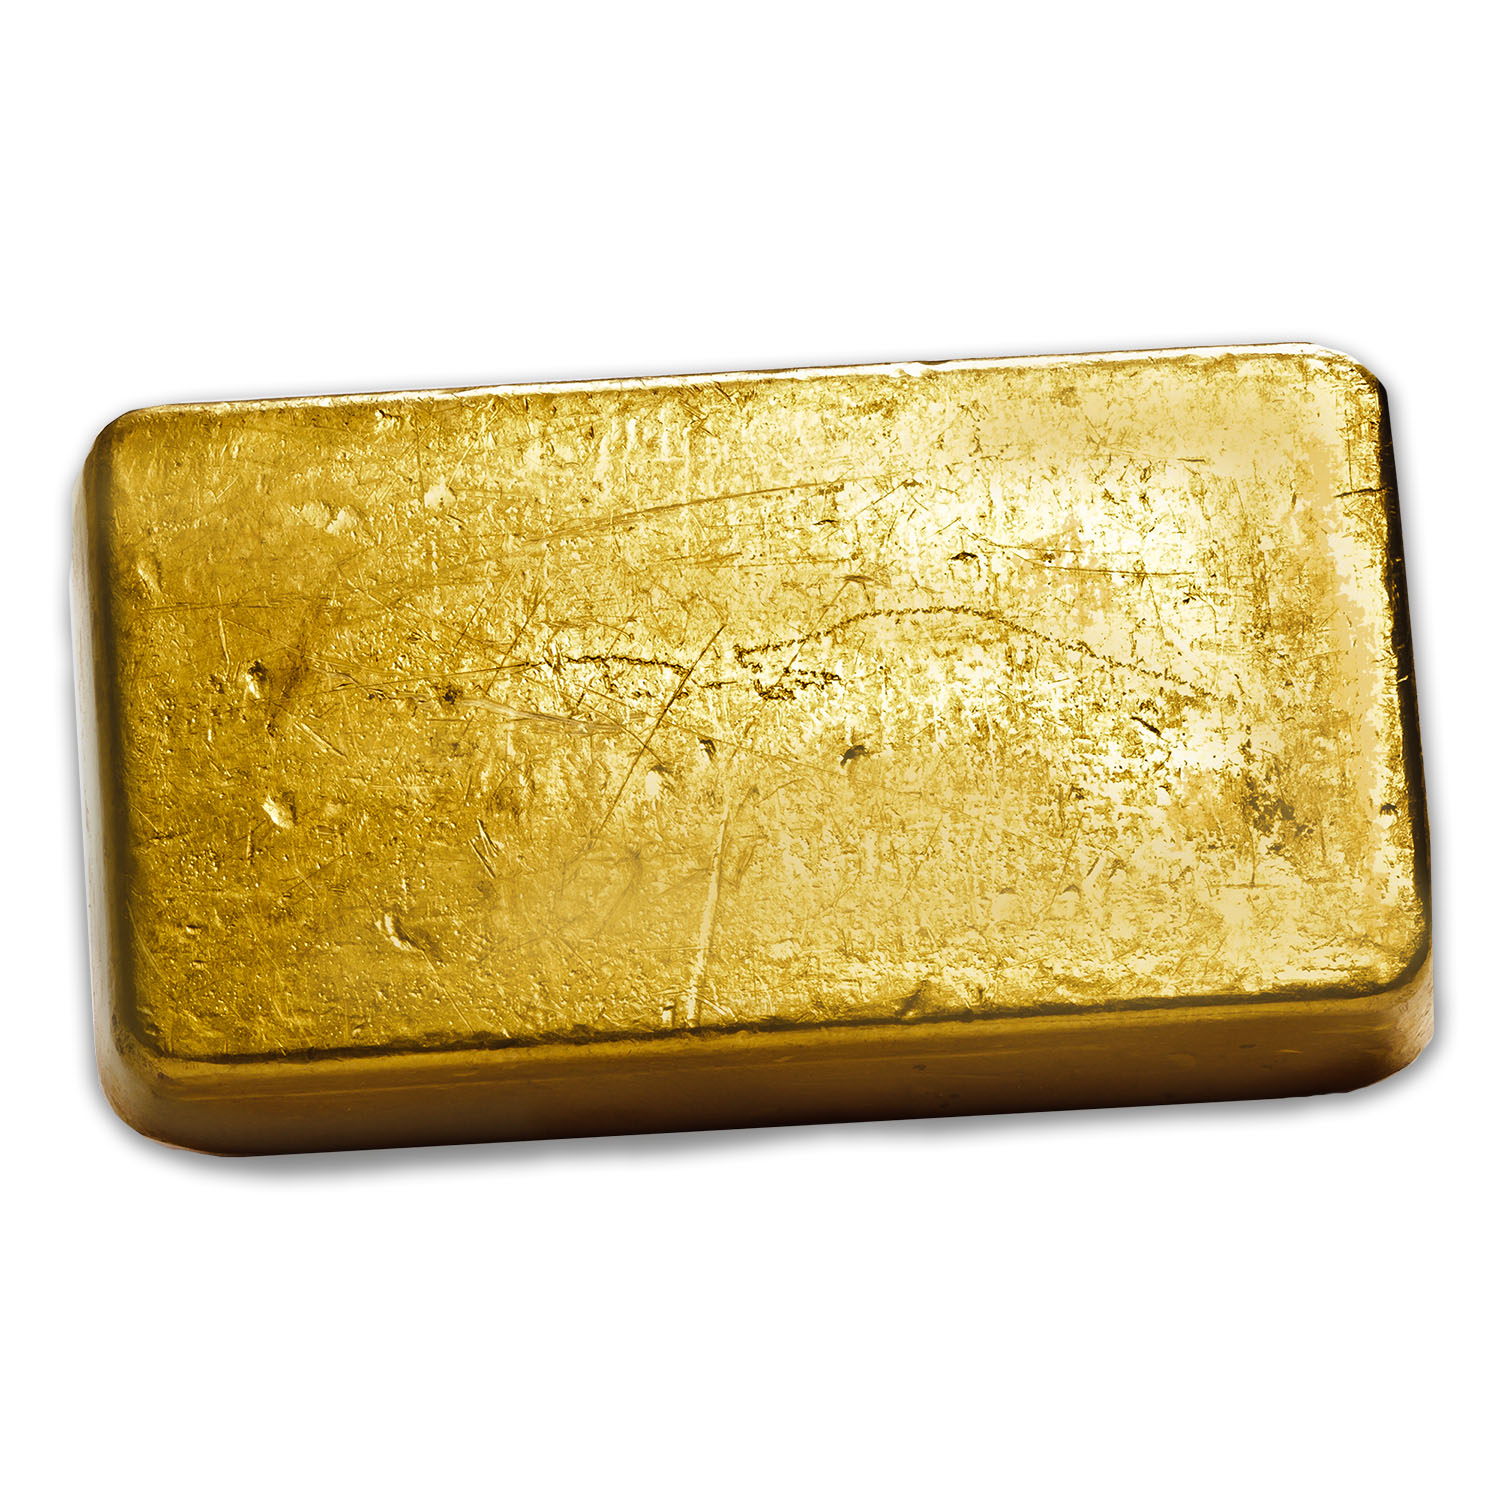 10 oz Gold Bar - Engelhard (Loaf Style, 997.8 Fine)